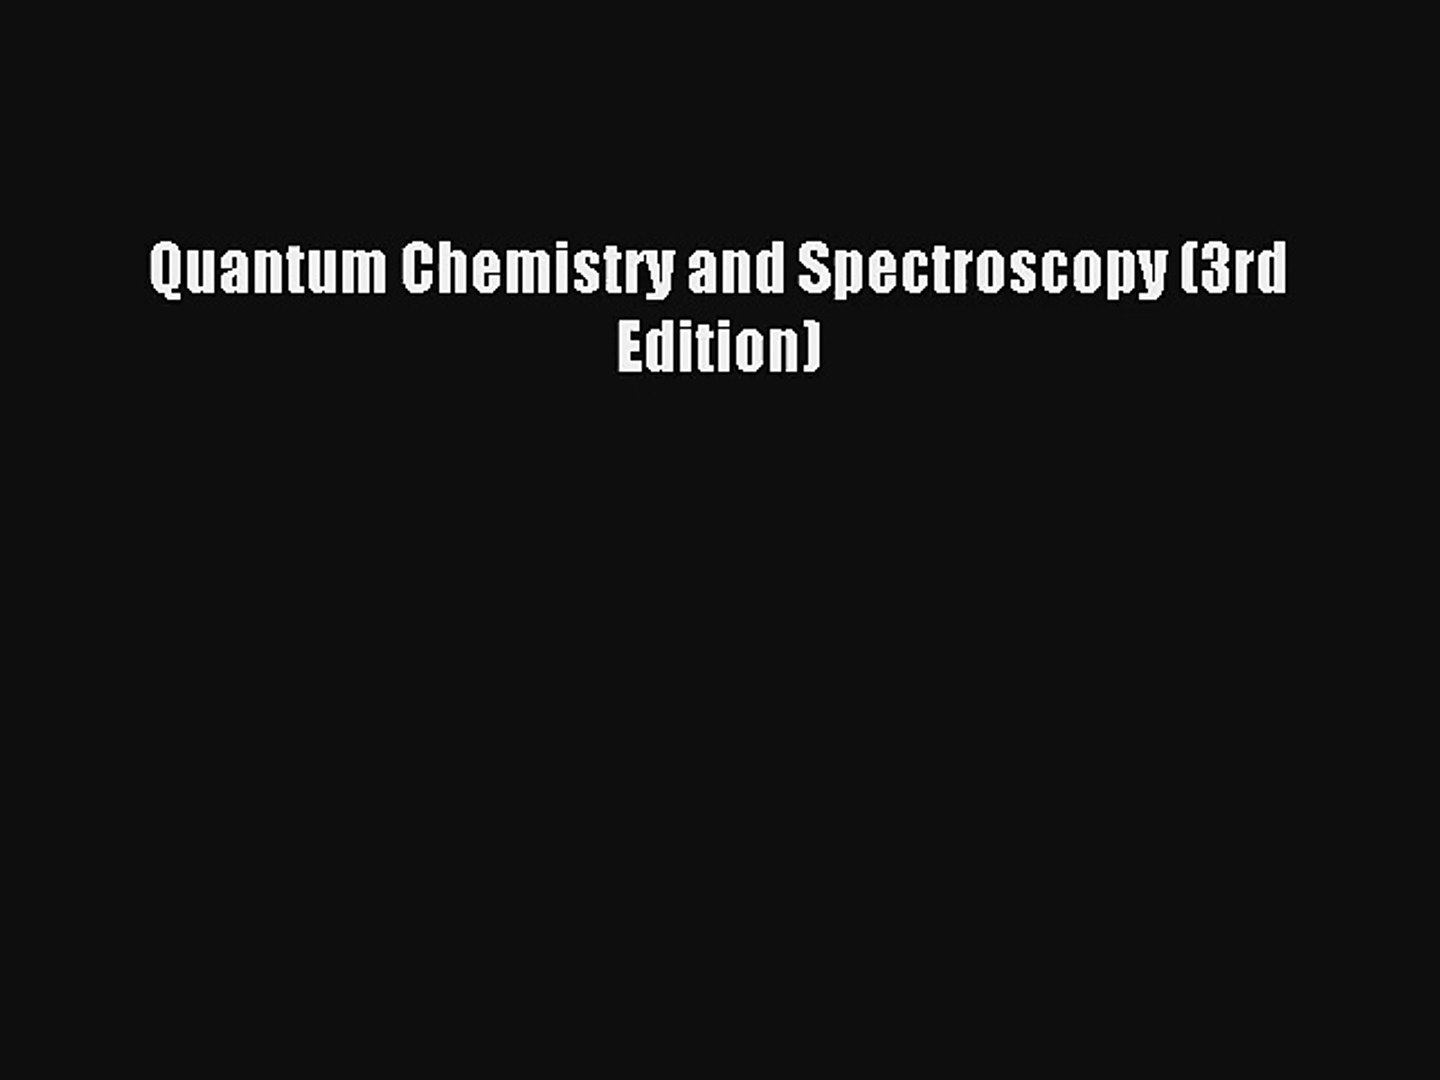 Access Card Package Quantum Chemistry /& Spectroscopy Plus Mastering Chemistry with eText 3rd Edition